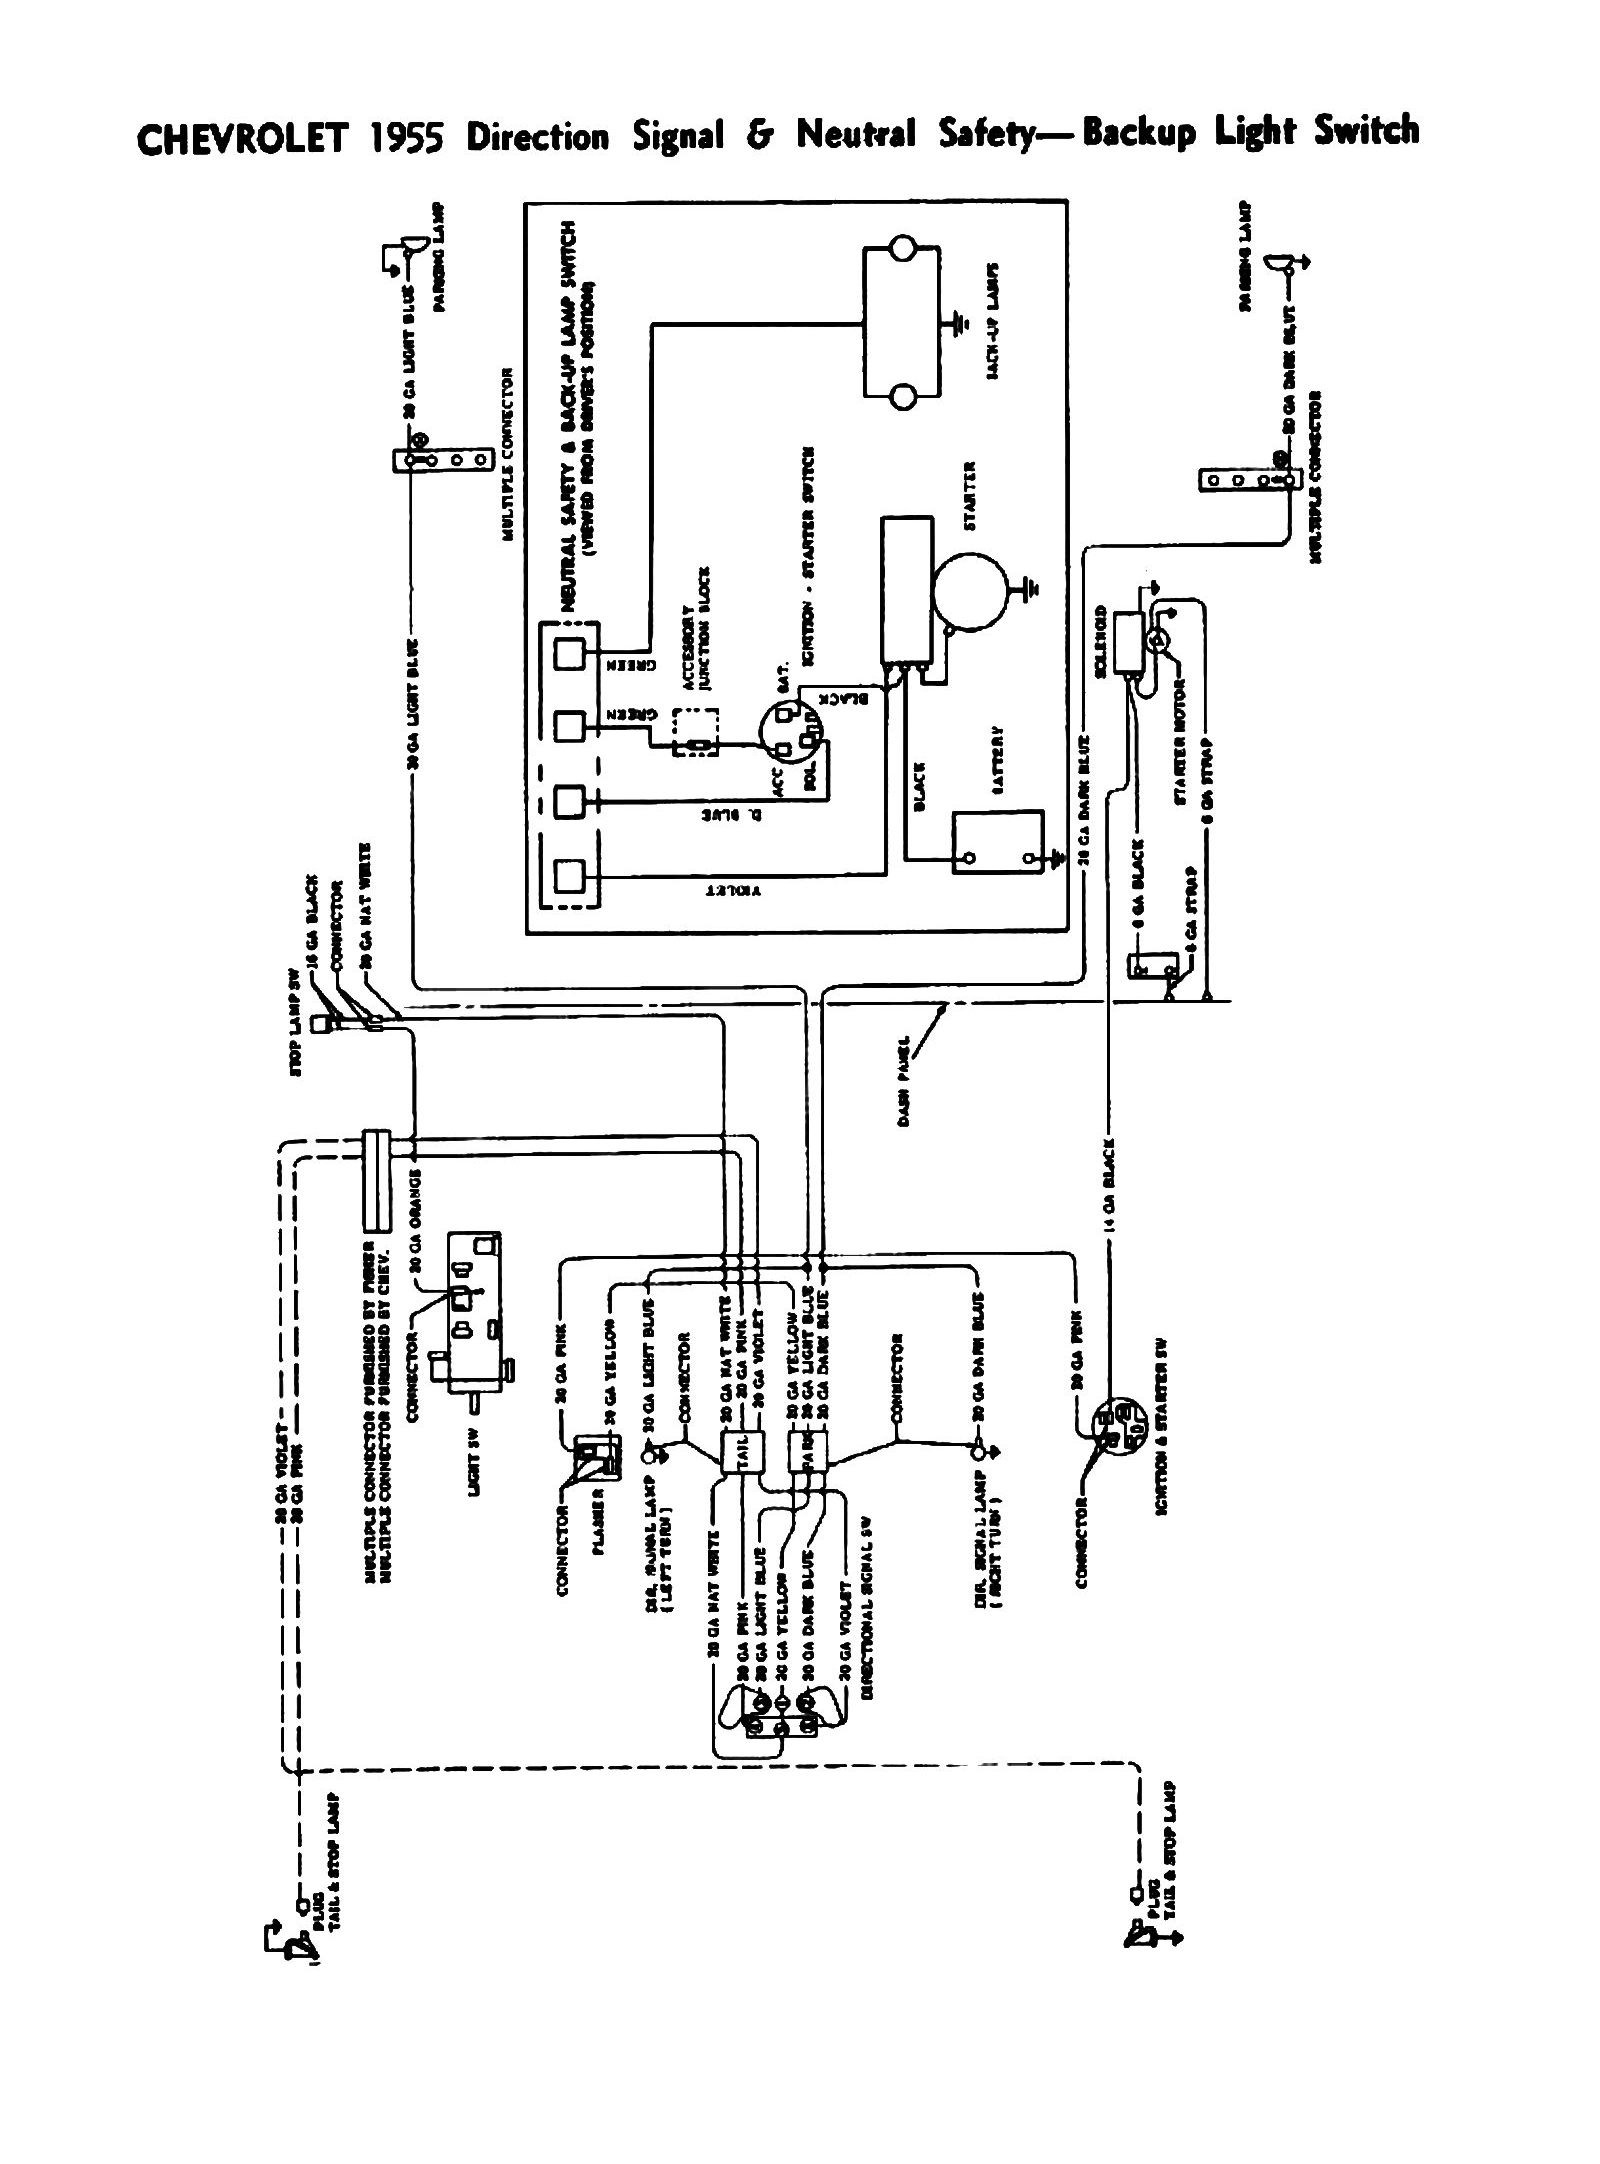 1979 K5 Blazer Wiring Diagram Most Uptodate Info 79 Chevy Pickup Library Rh 20 Informaticaonlinetraining Co C10 Ignition